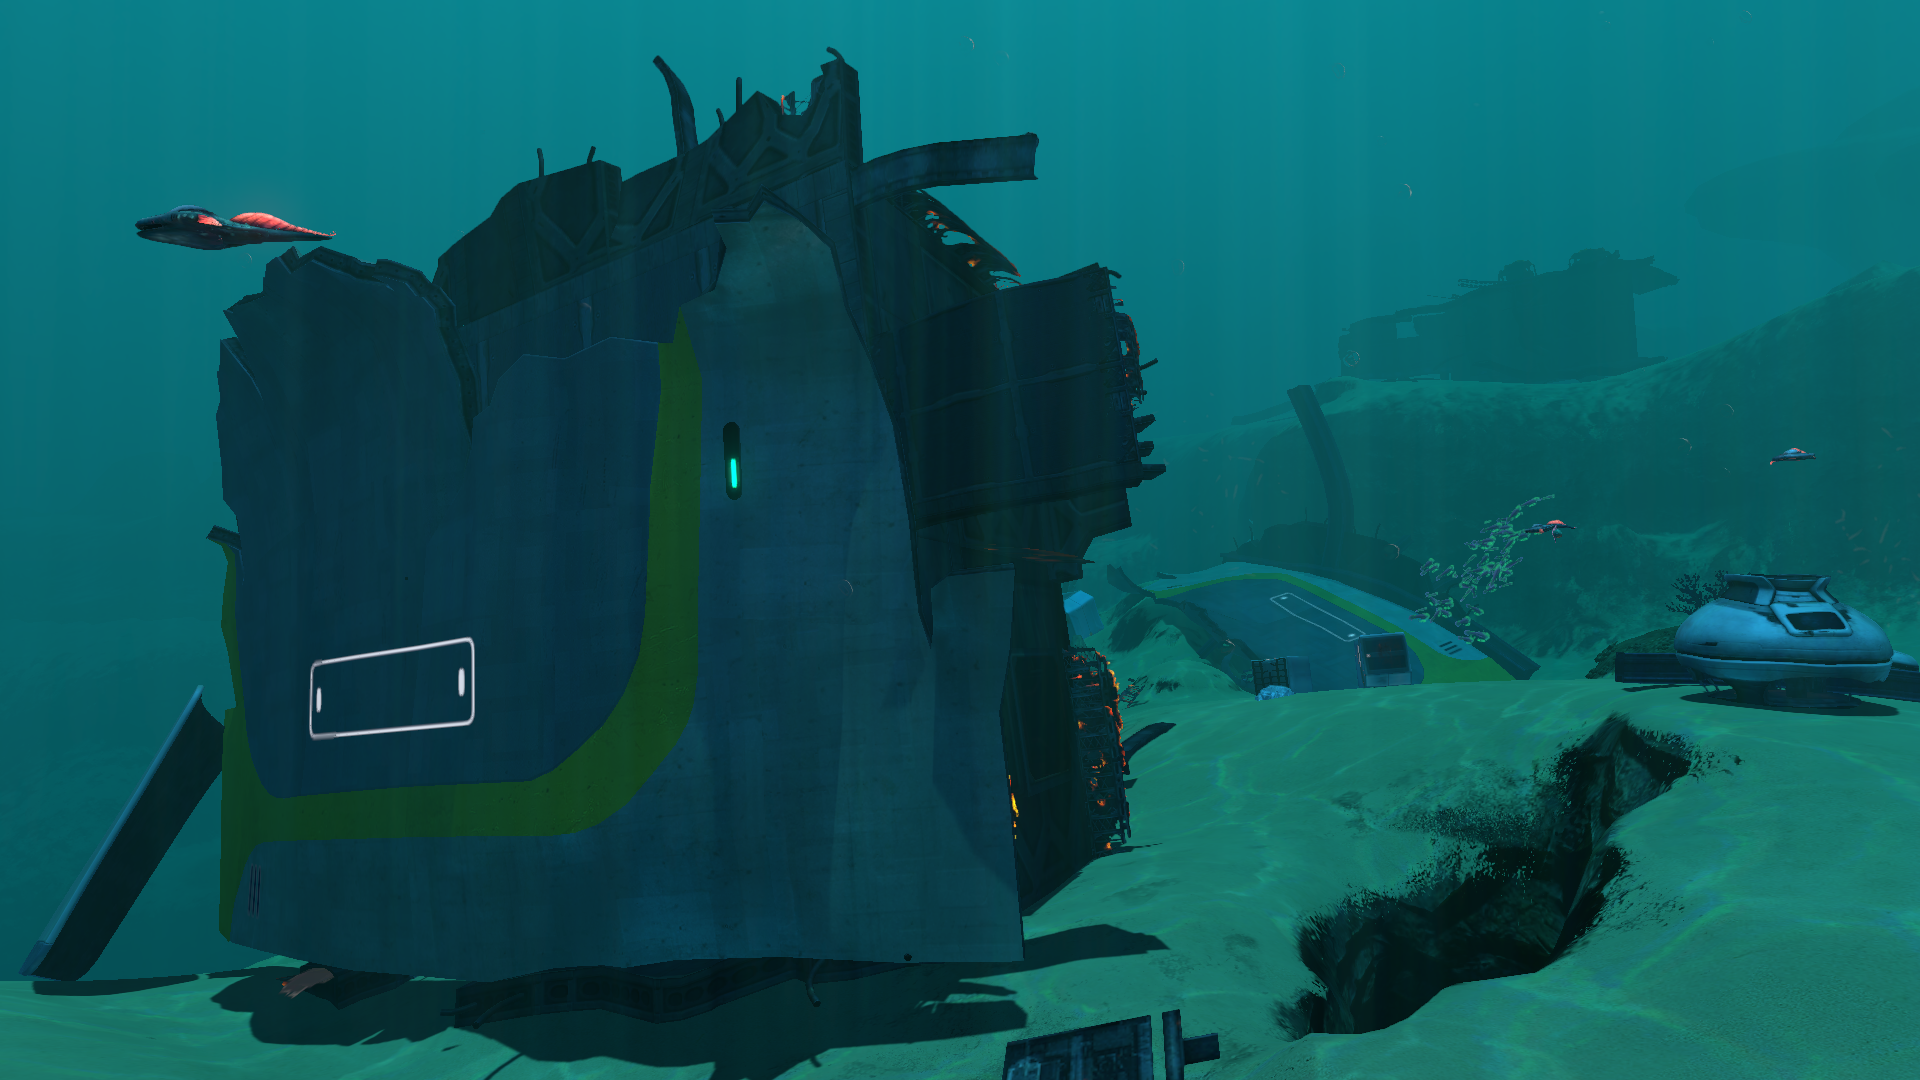 Someone please explain to me how placing the Ghost Leviathan